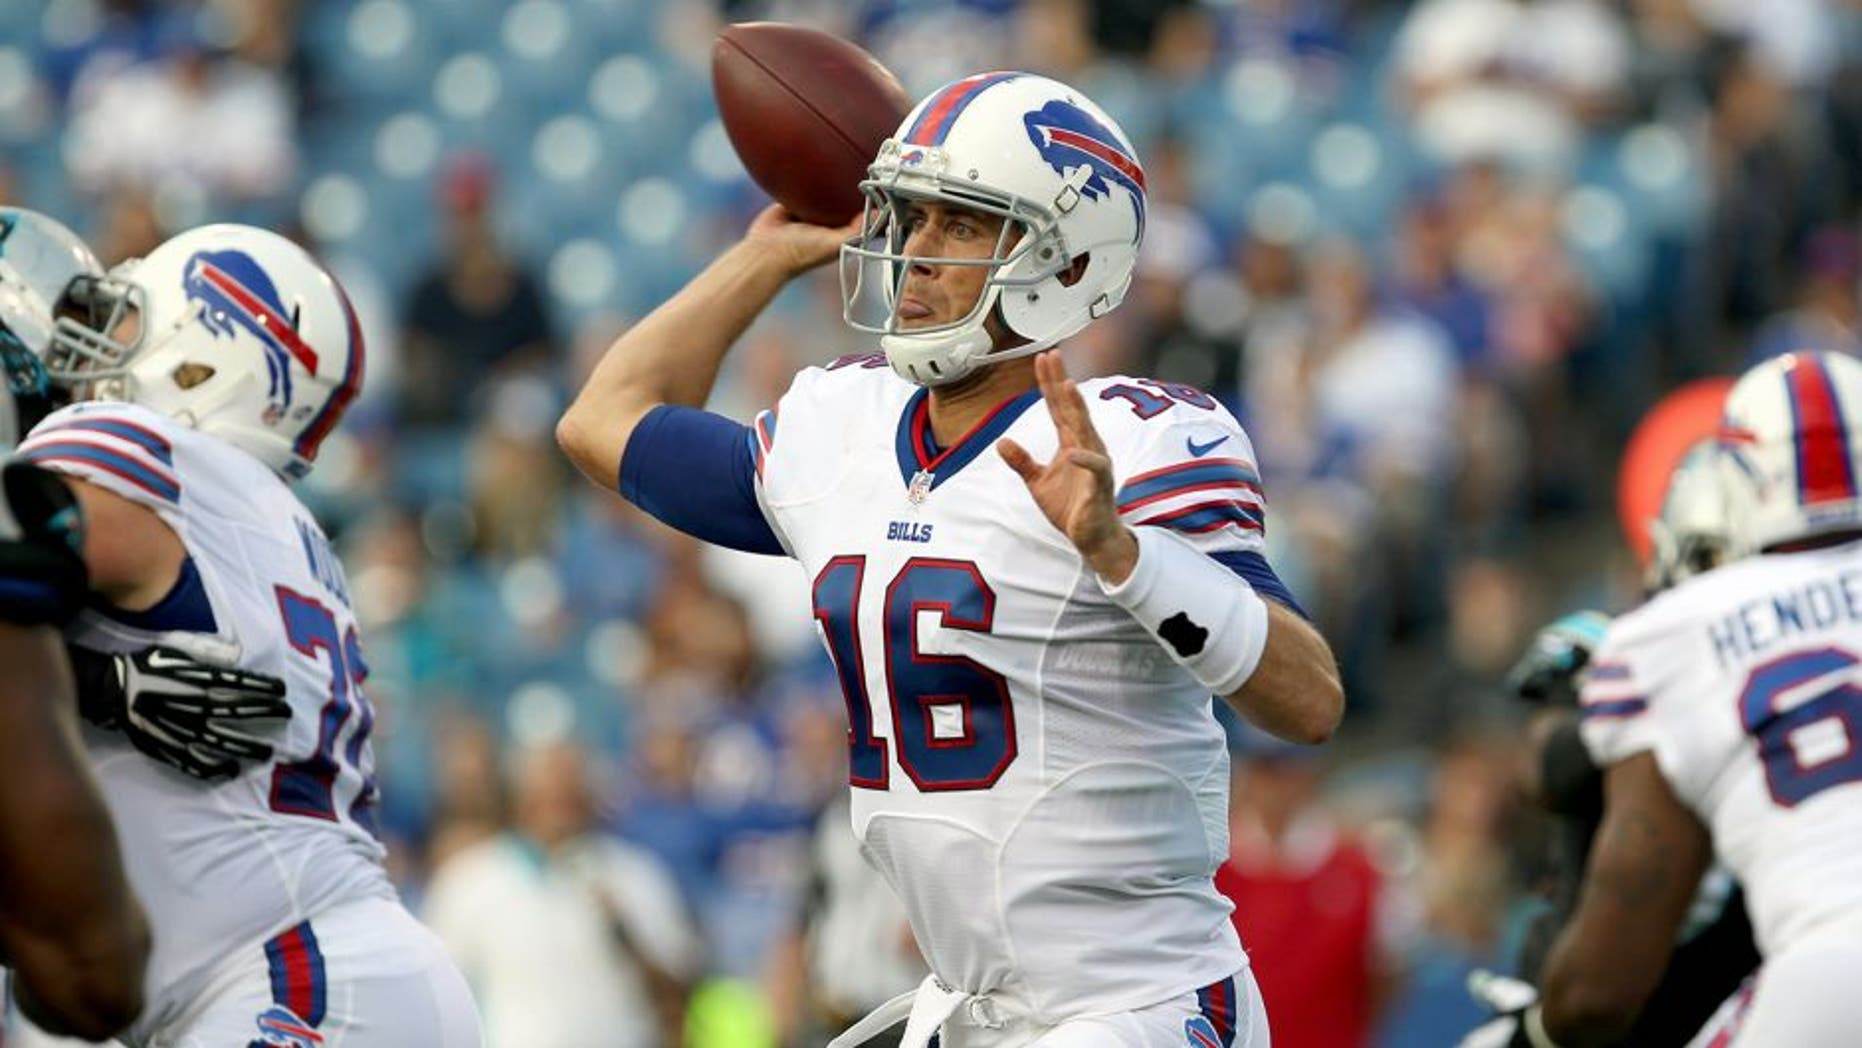 Aug 14, 2015; Orchard Park, NY, USA; Buffalo Bills quarterback Matt Cassel (16) looks to make a pass attempt during the first quarter against the Carolina Panthers in a preseason NFL football game at Ralph Wilson Stadium. Mandatory Credit: Timothy T. Ludwig-USA TODAY Sports